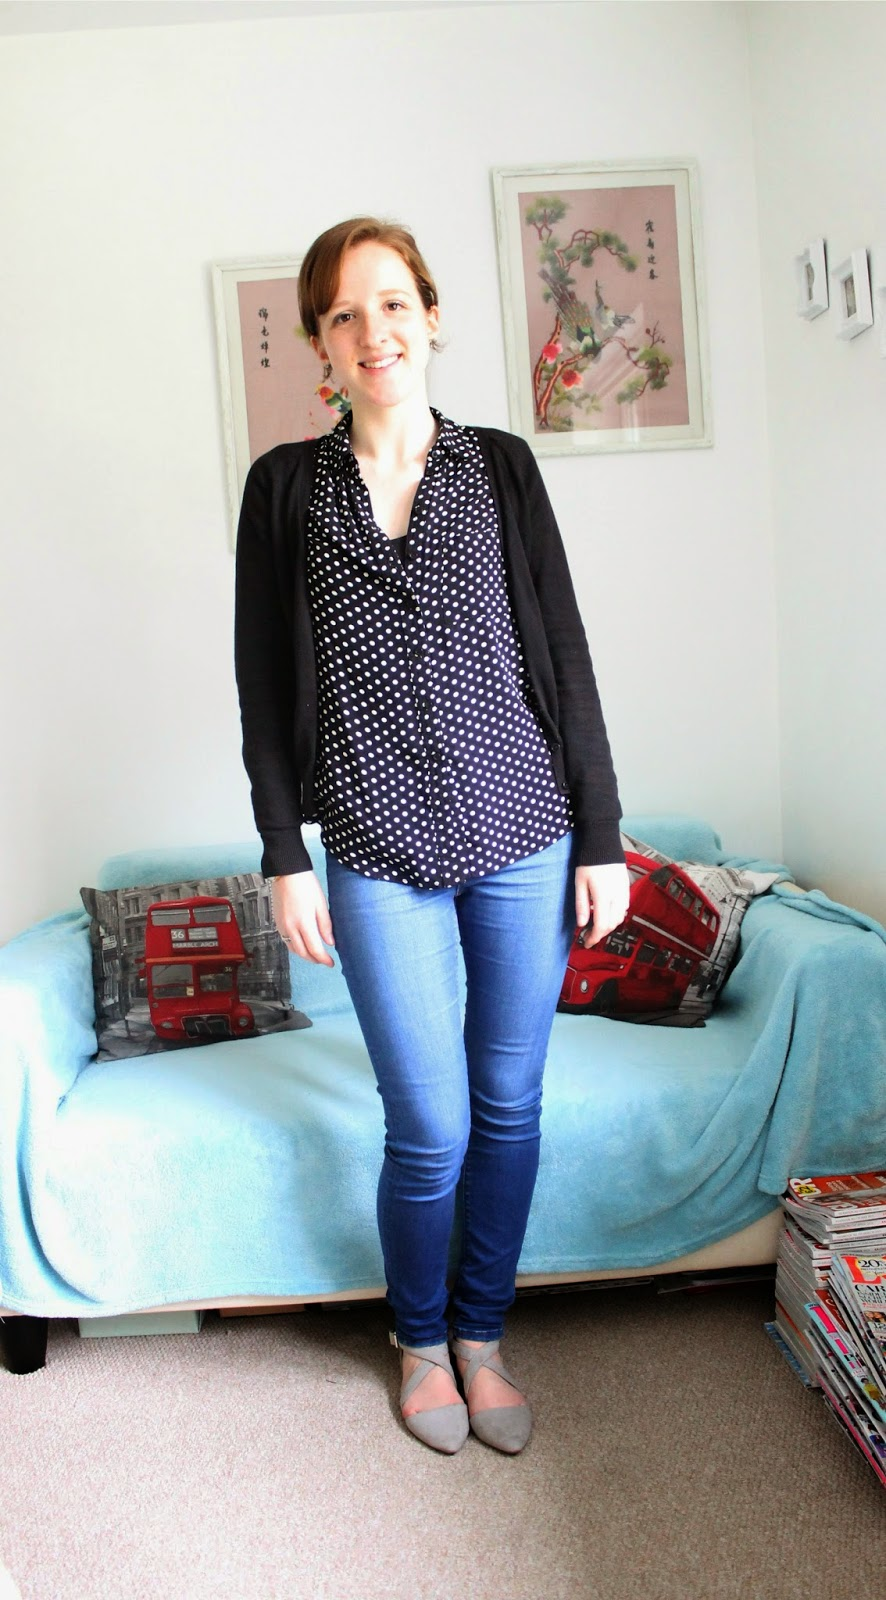 OOTD: Spotty Shirt and Pointy Shoes Primark New Look ASOS H&M